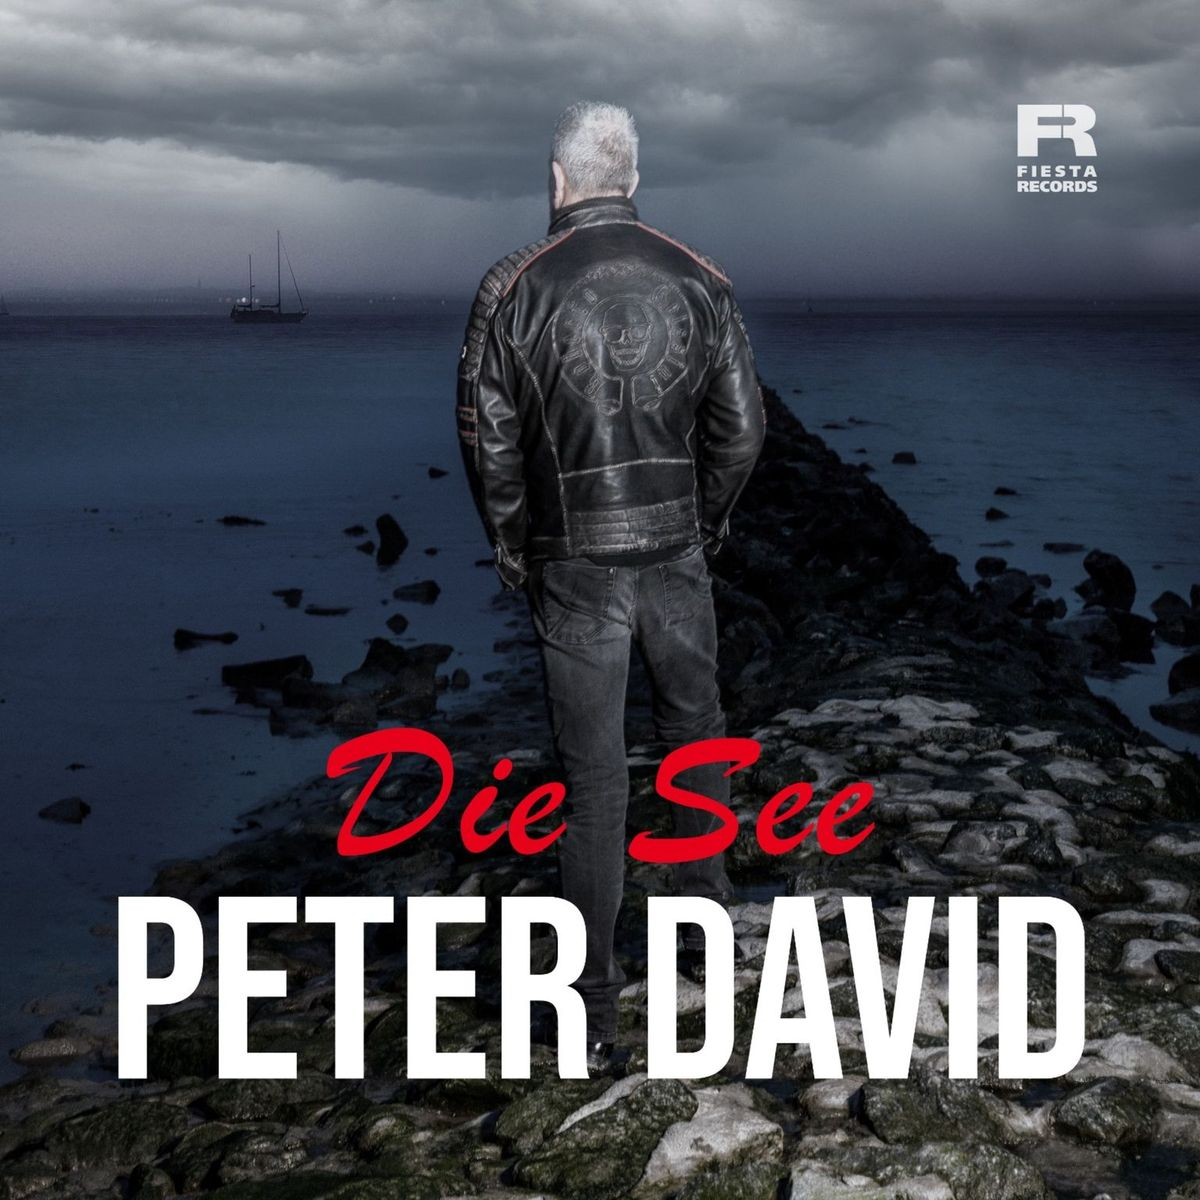 PETER DAVID * Die See (Single)